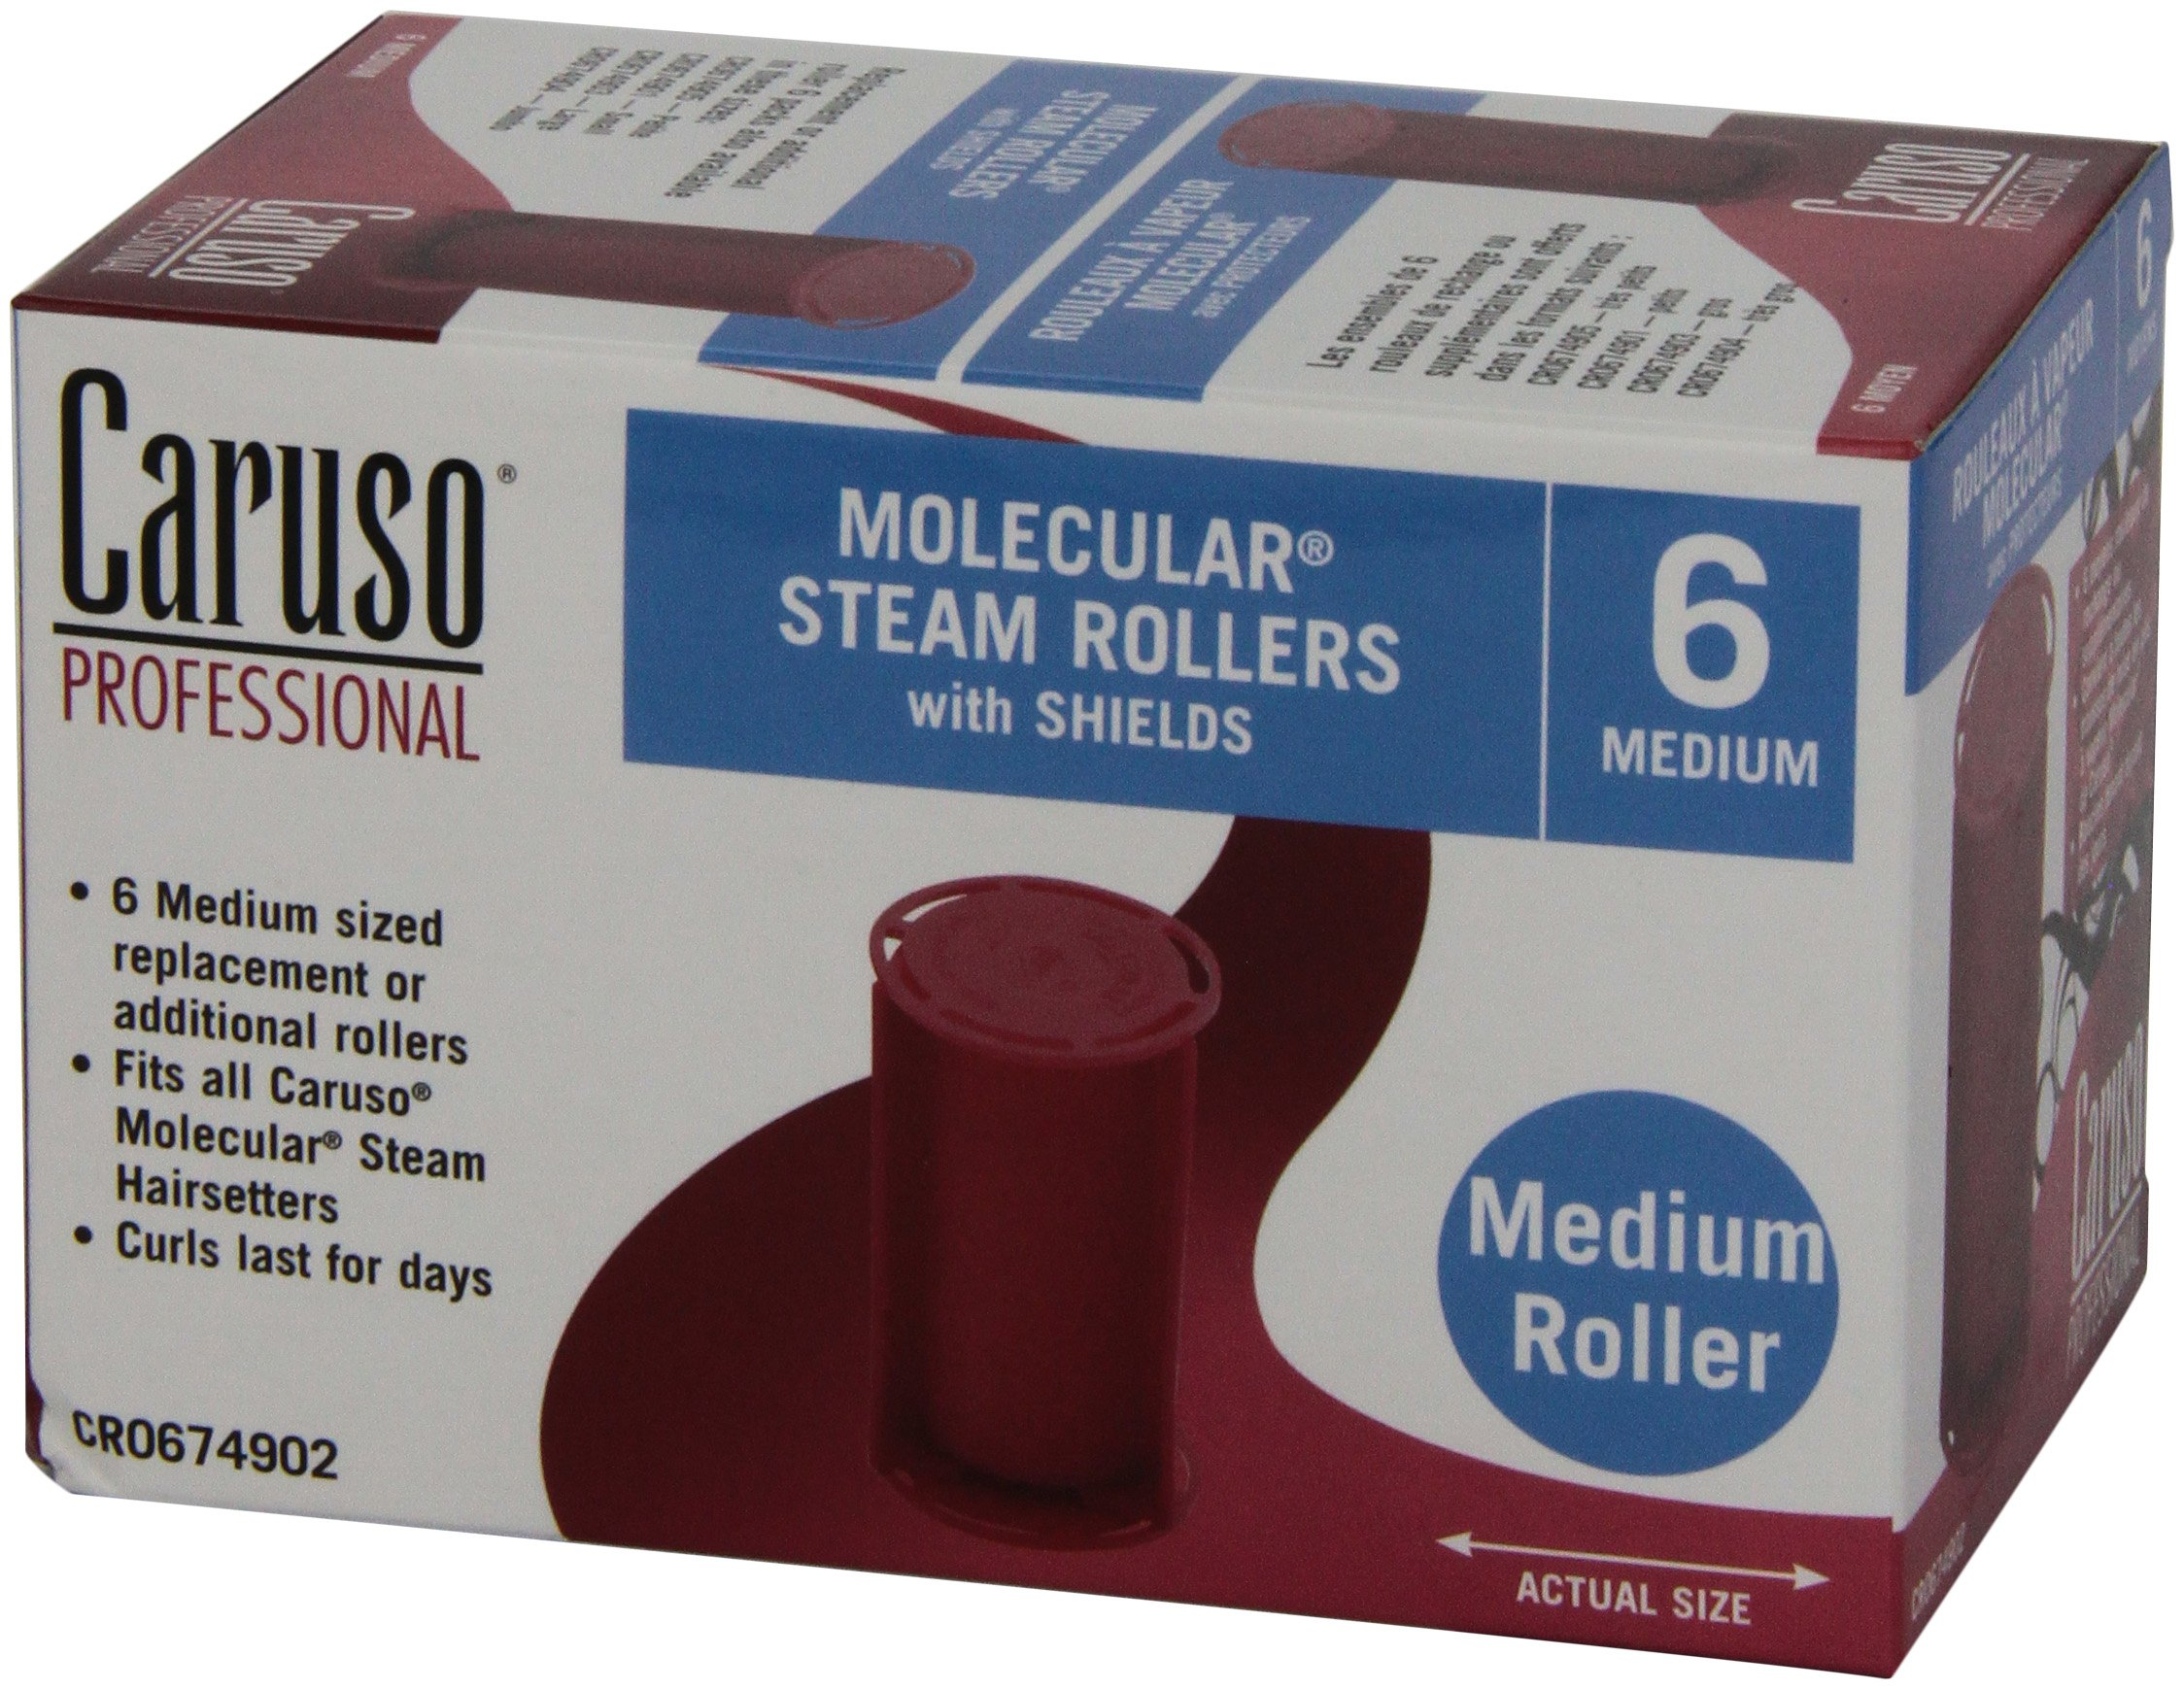 Caruso Professional Molecular Steam Rollers with Shields, Medium (6-Pack)